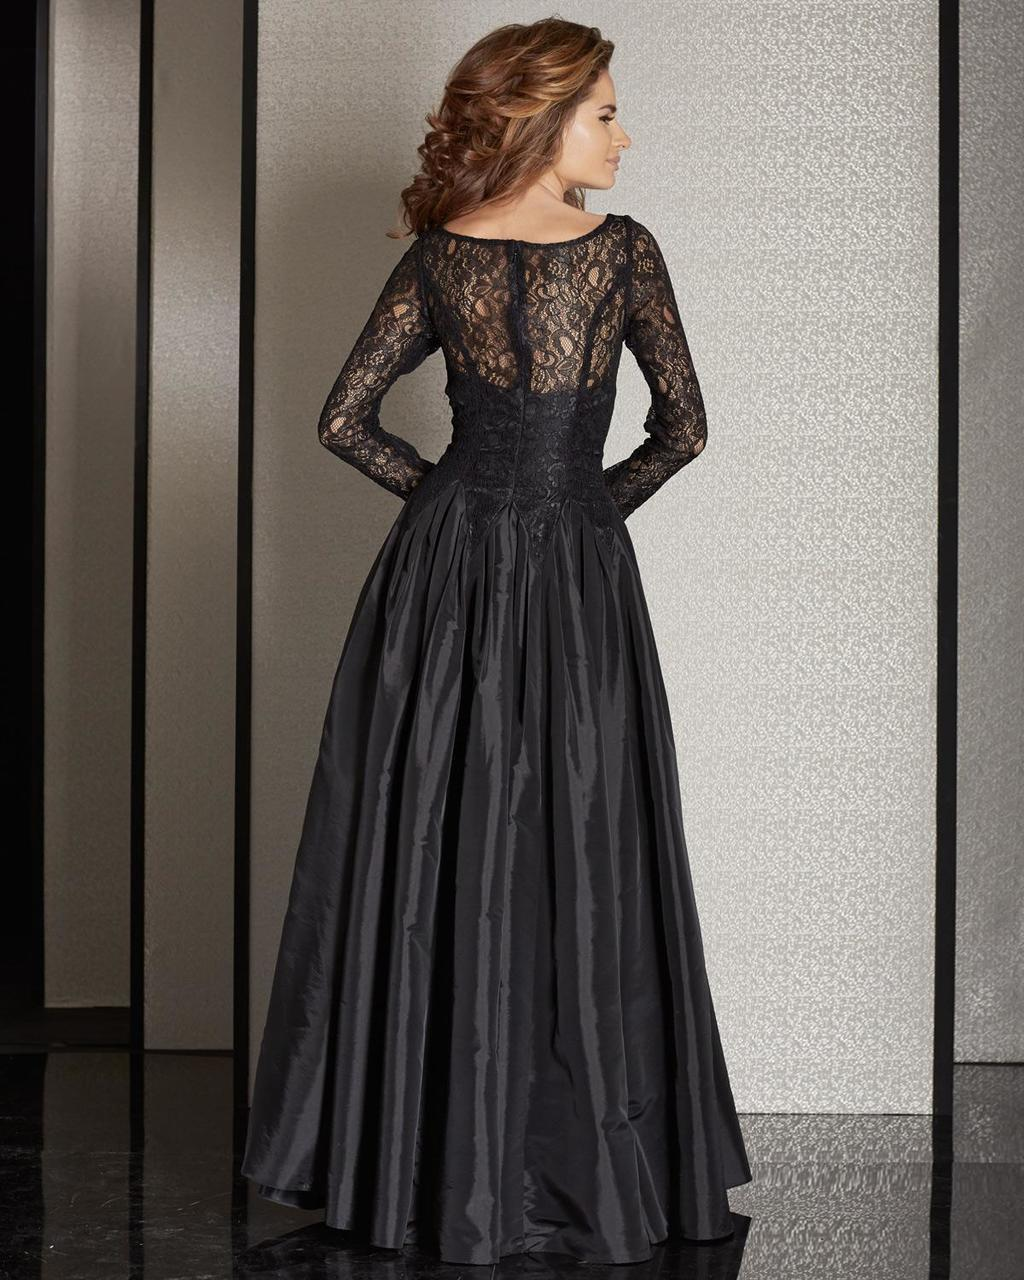 Clarisse - M6205 Long Sleeve Illusion Lace Gown in Black